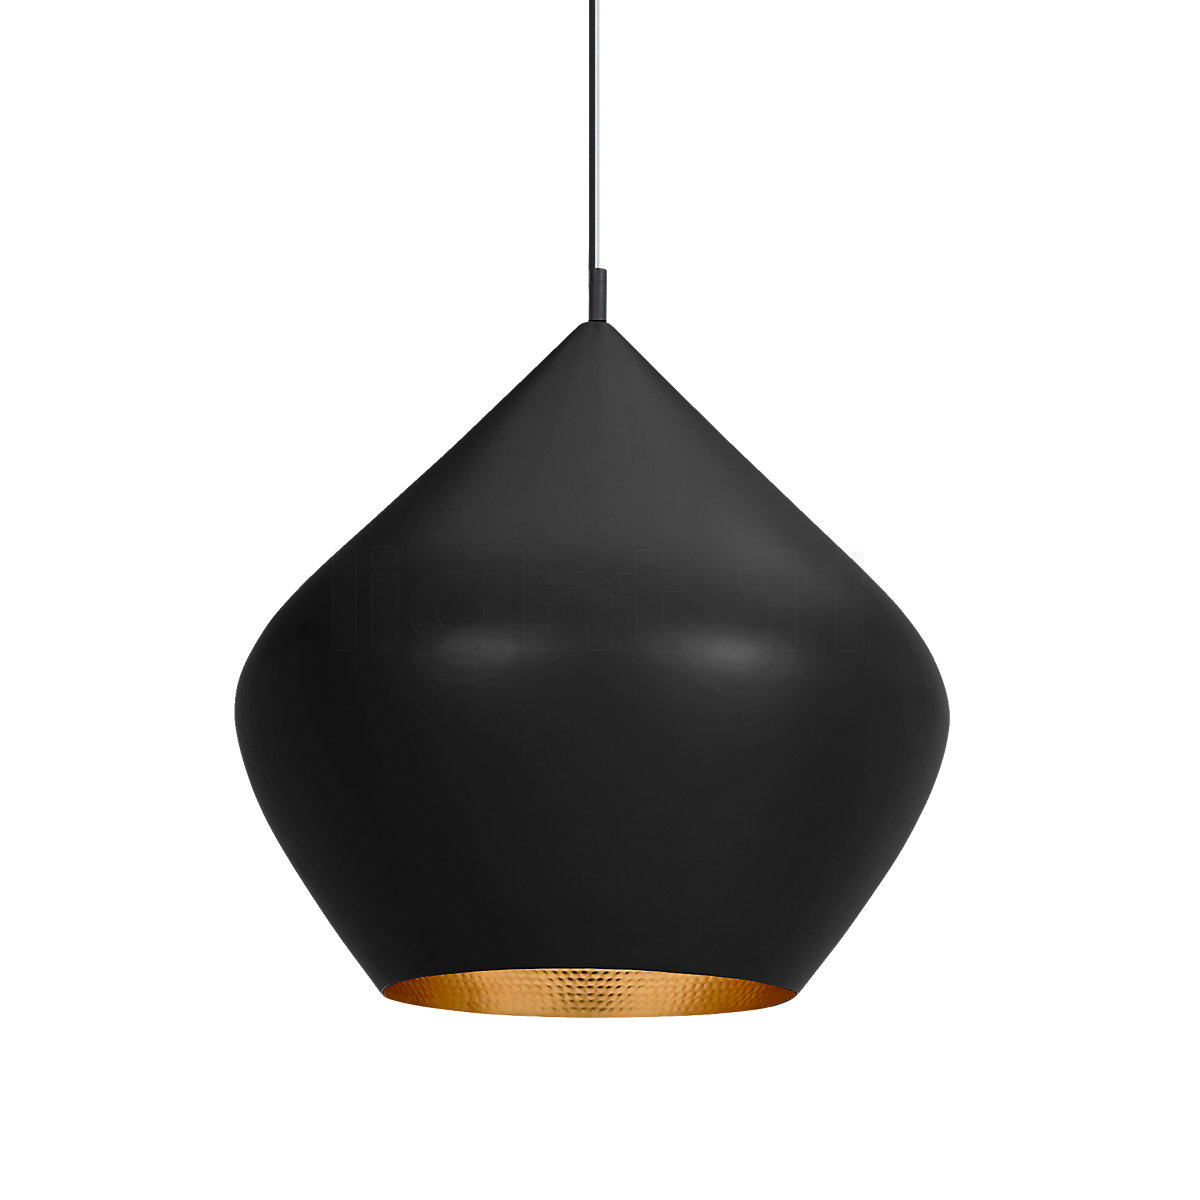 Discover The Right Lighting For Your Bedroom Design  bedroom design Discover The Right Lighting For Your Bedroom Design Tom Dixon Beat Stout Pendant Light bb13d9084dcaa1f25abad57fb39e55a9